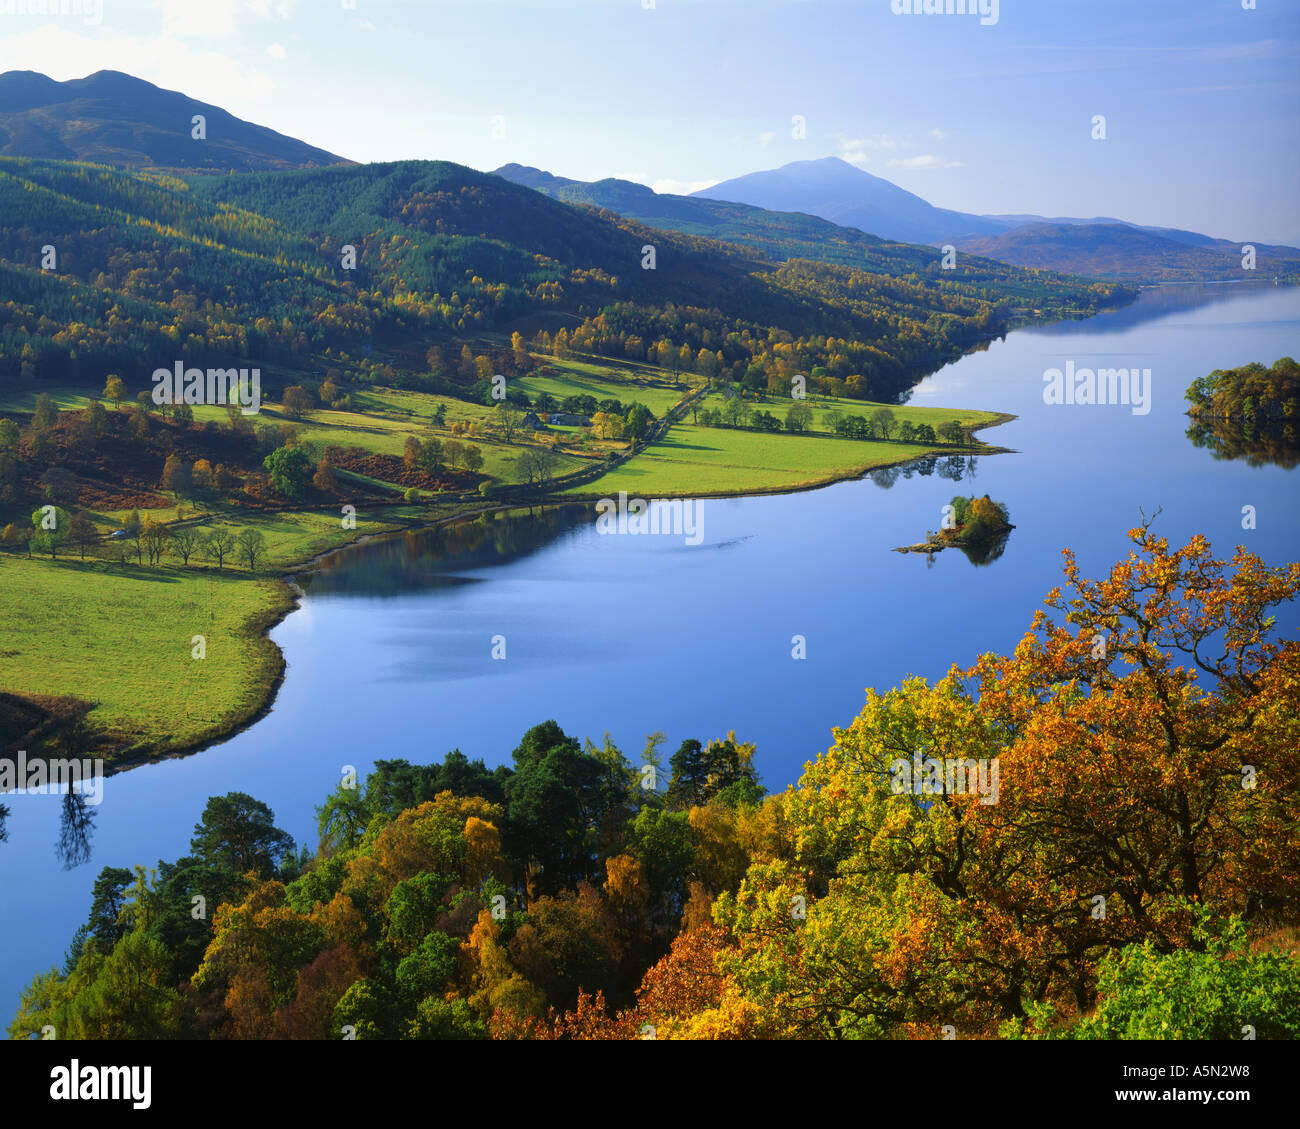 GB - Scozia: Loch Tummel dalla Queen's vista in Tayside Immagini Stock